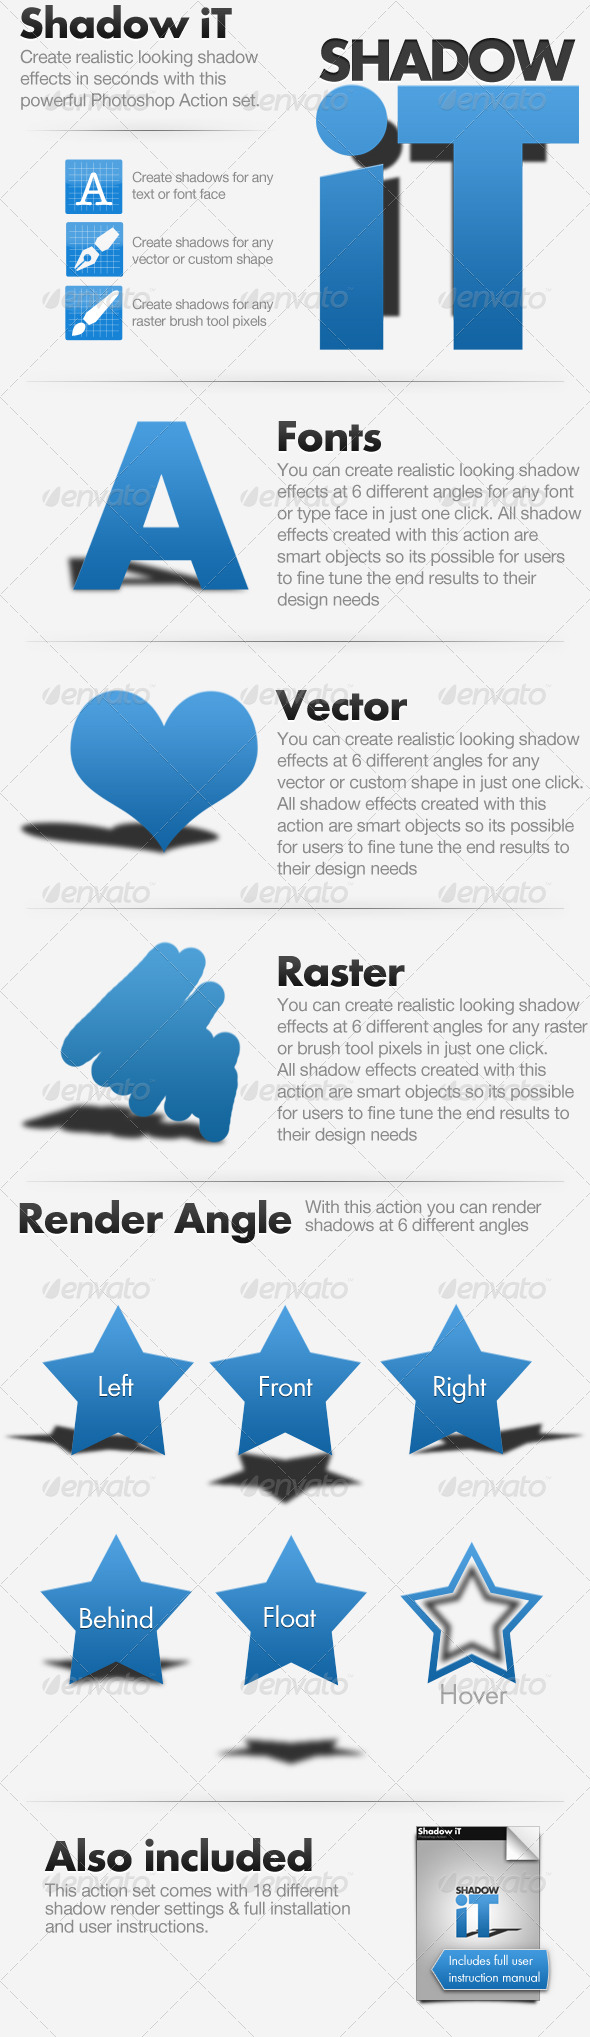 Shadow iT - Shadow Creator Actions Pack - Photoshop Add-ons